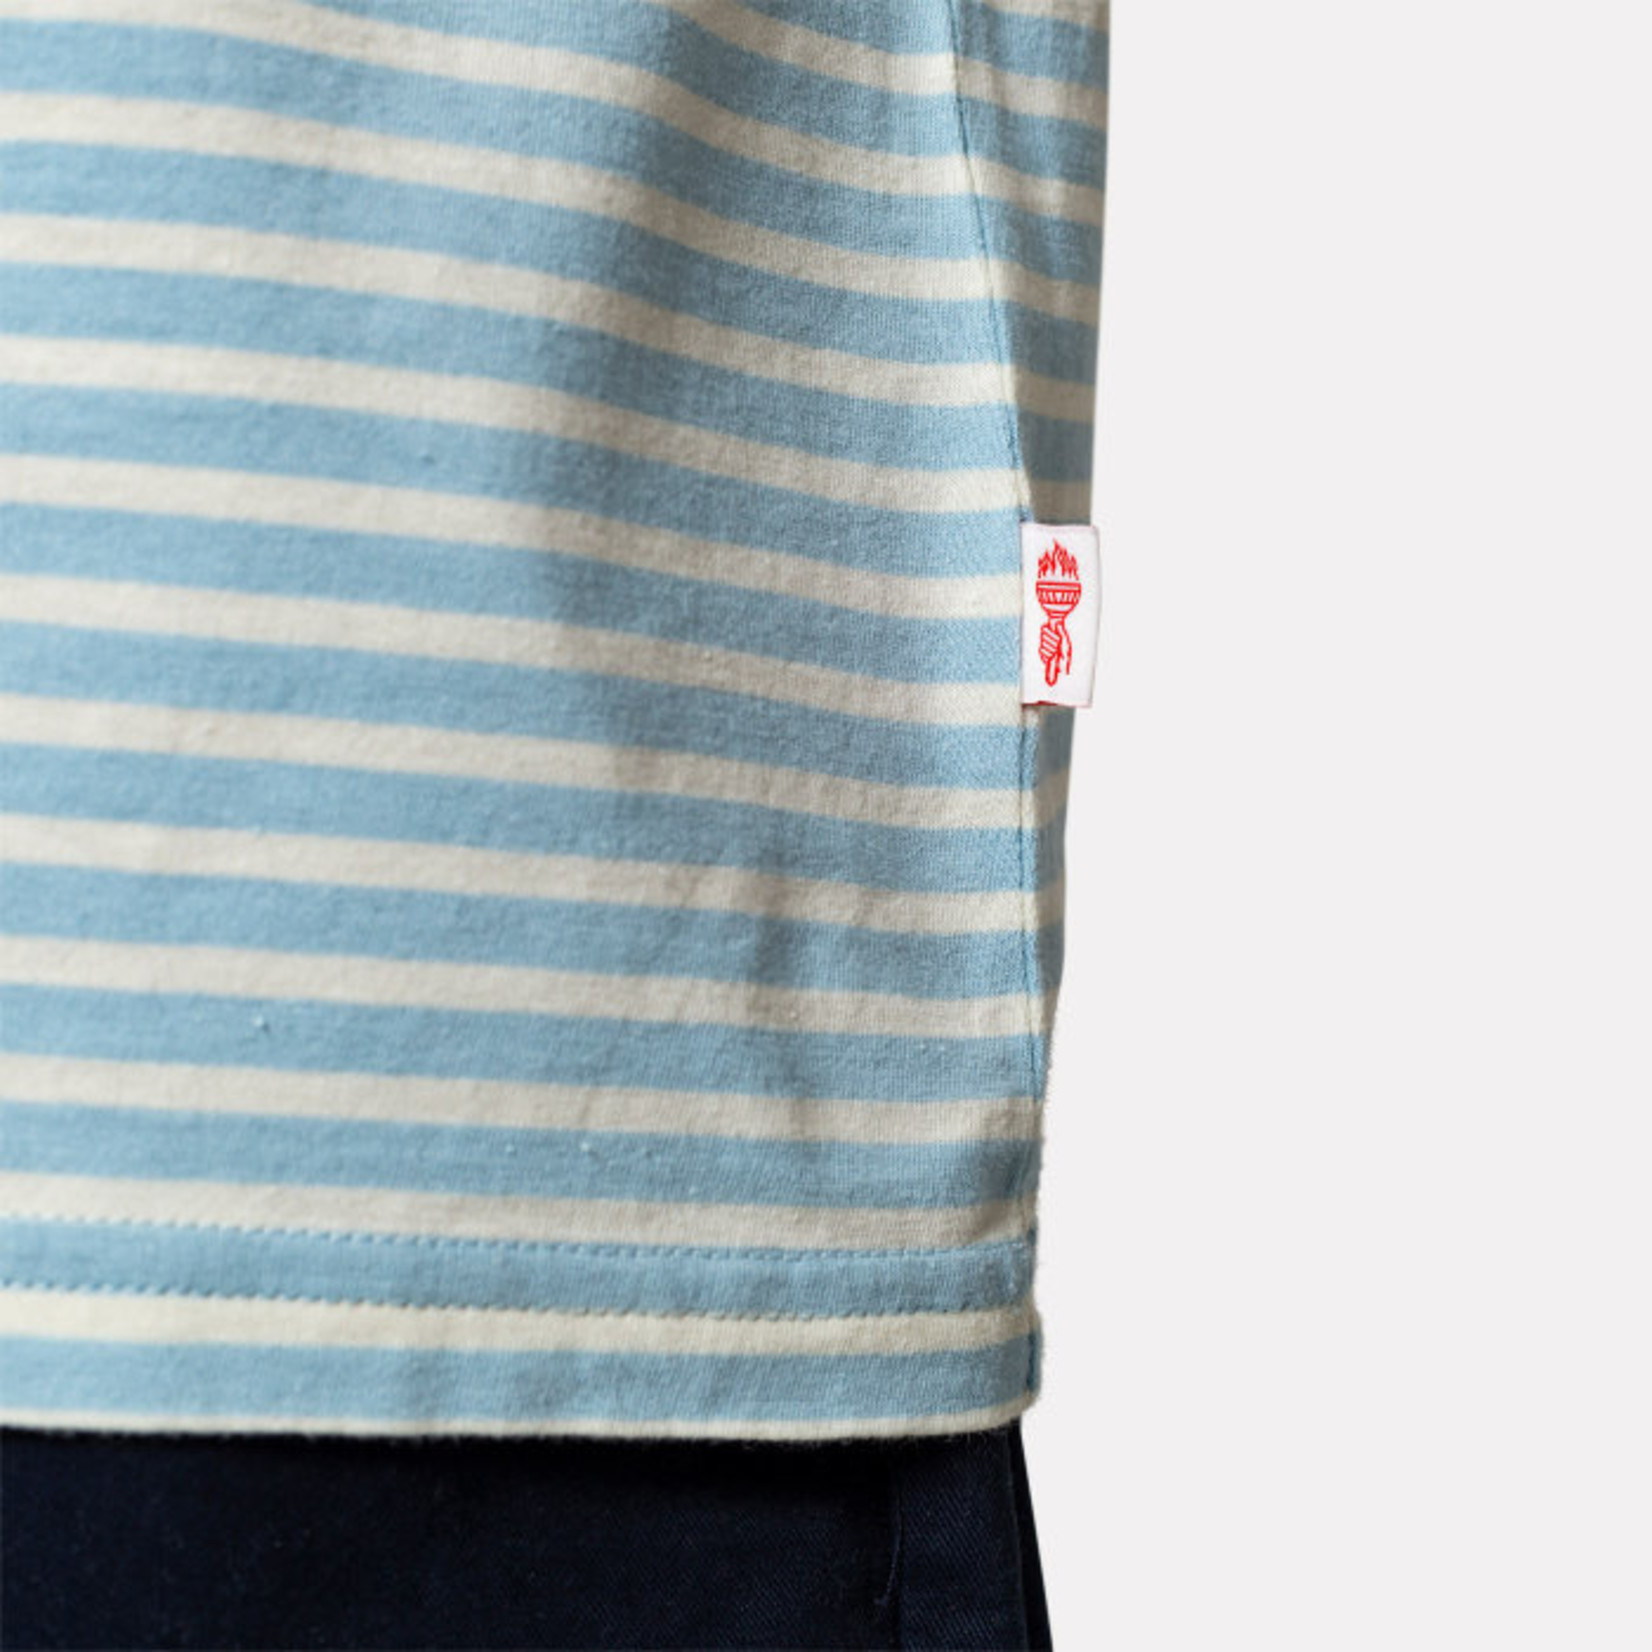 RVLT Revolution RVLT 1055 Light Blue Striped T-Shirt